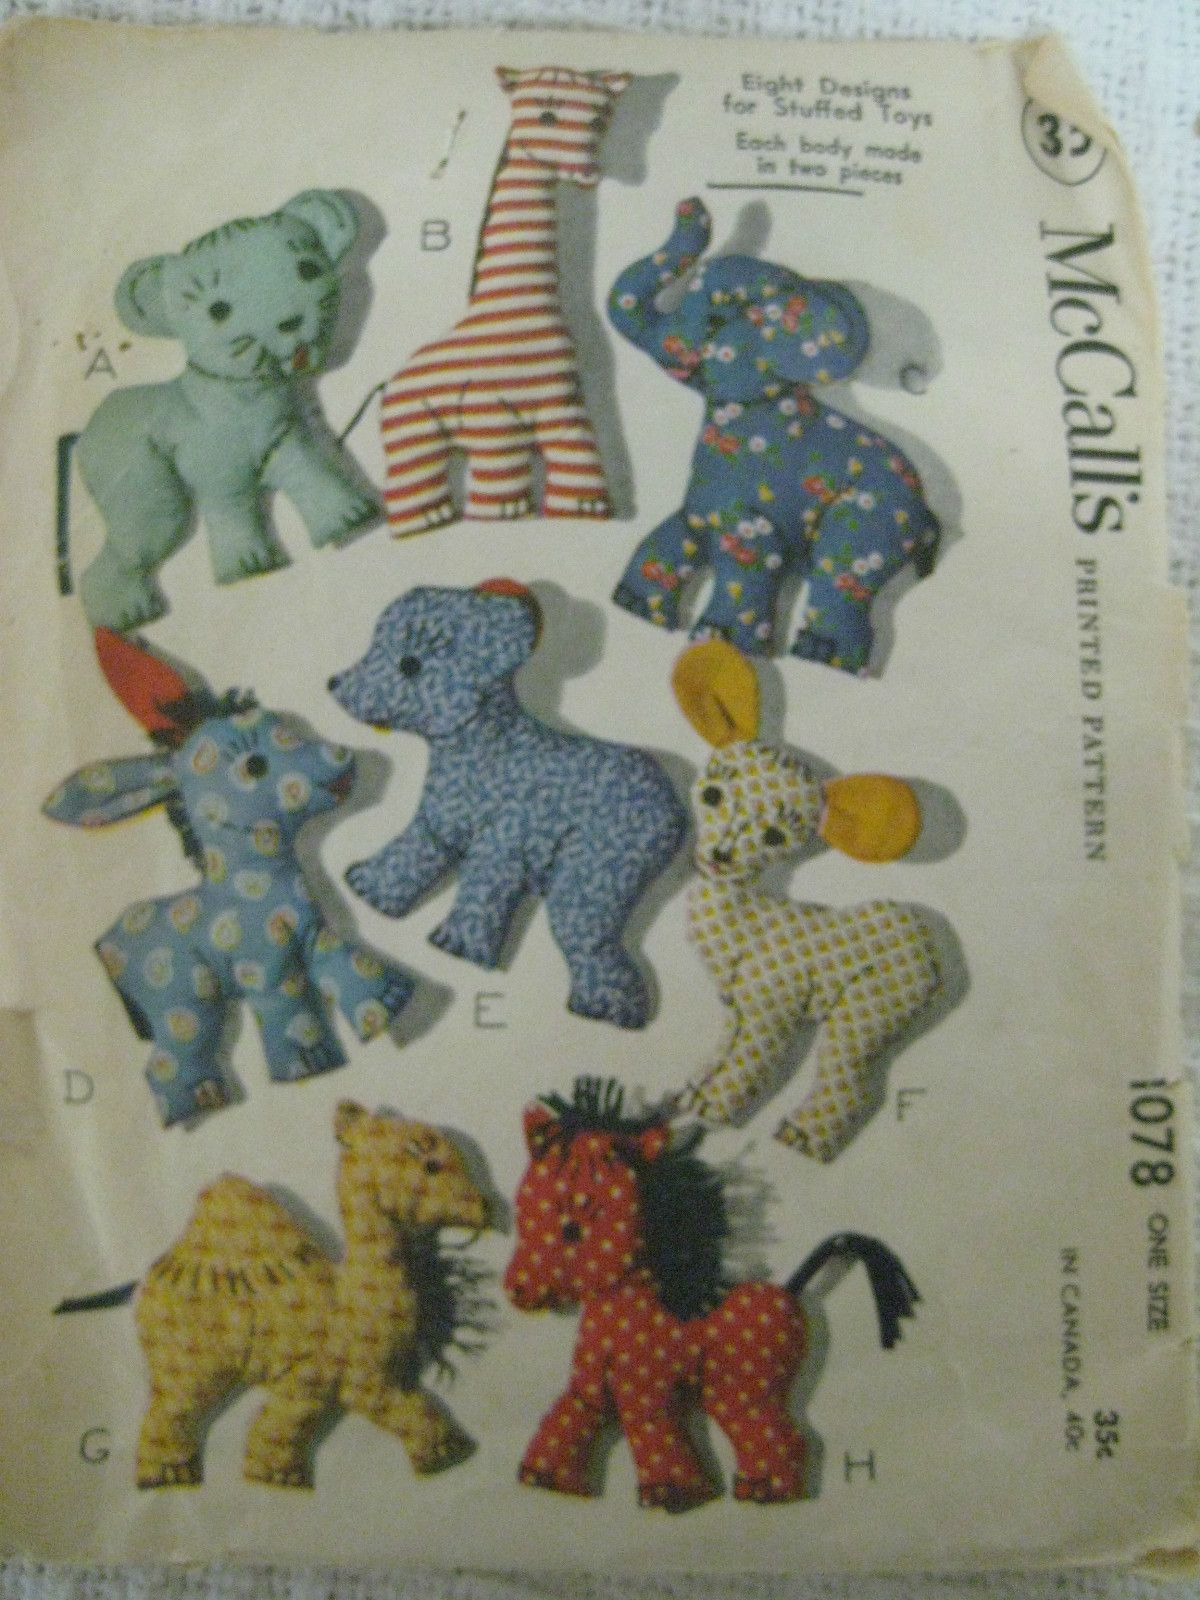 Stuffed Toy Pattern 1078 Easy To Make Vintage 1950s Toy Patterns 8